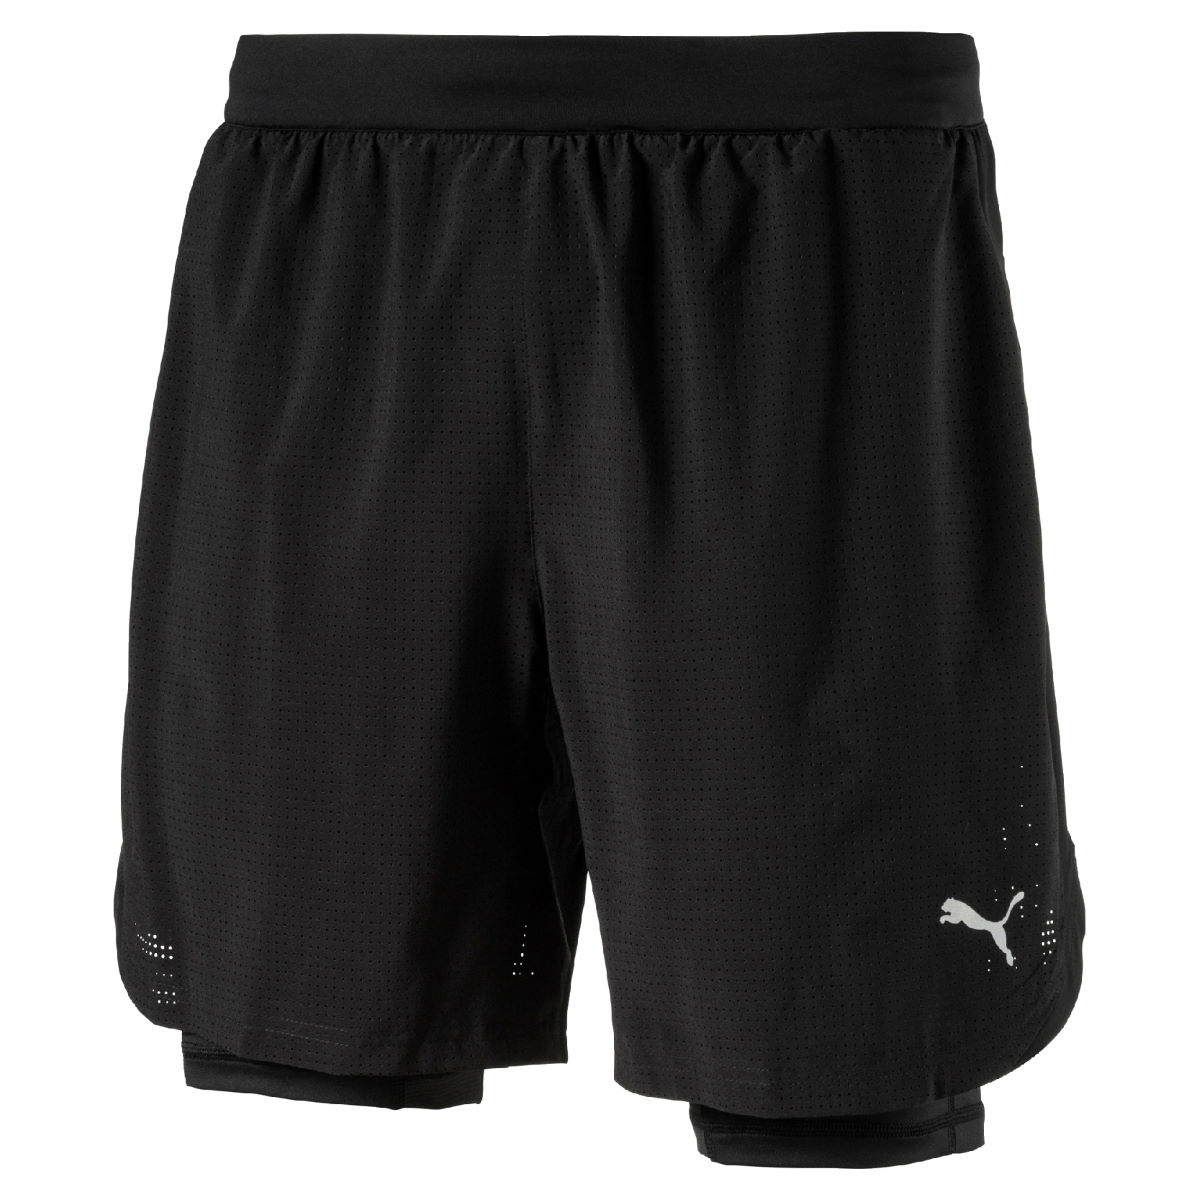 Short Puma Pace Run (2 en 1, 18 cm environ) - M Puma Black